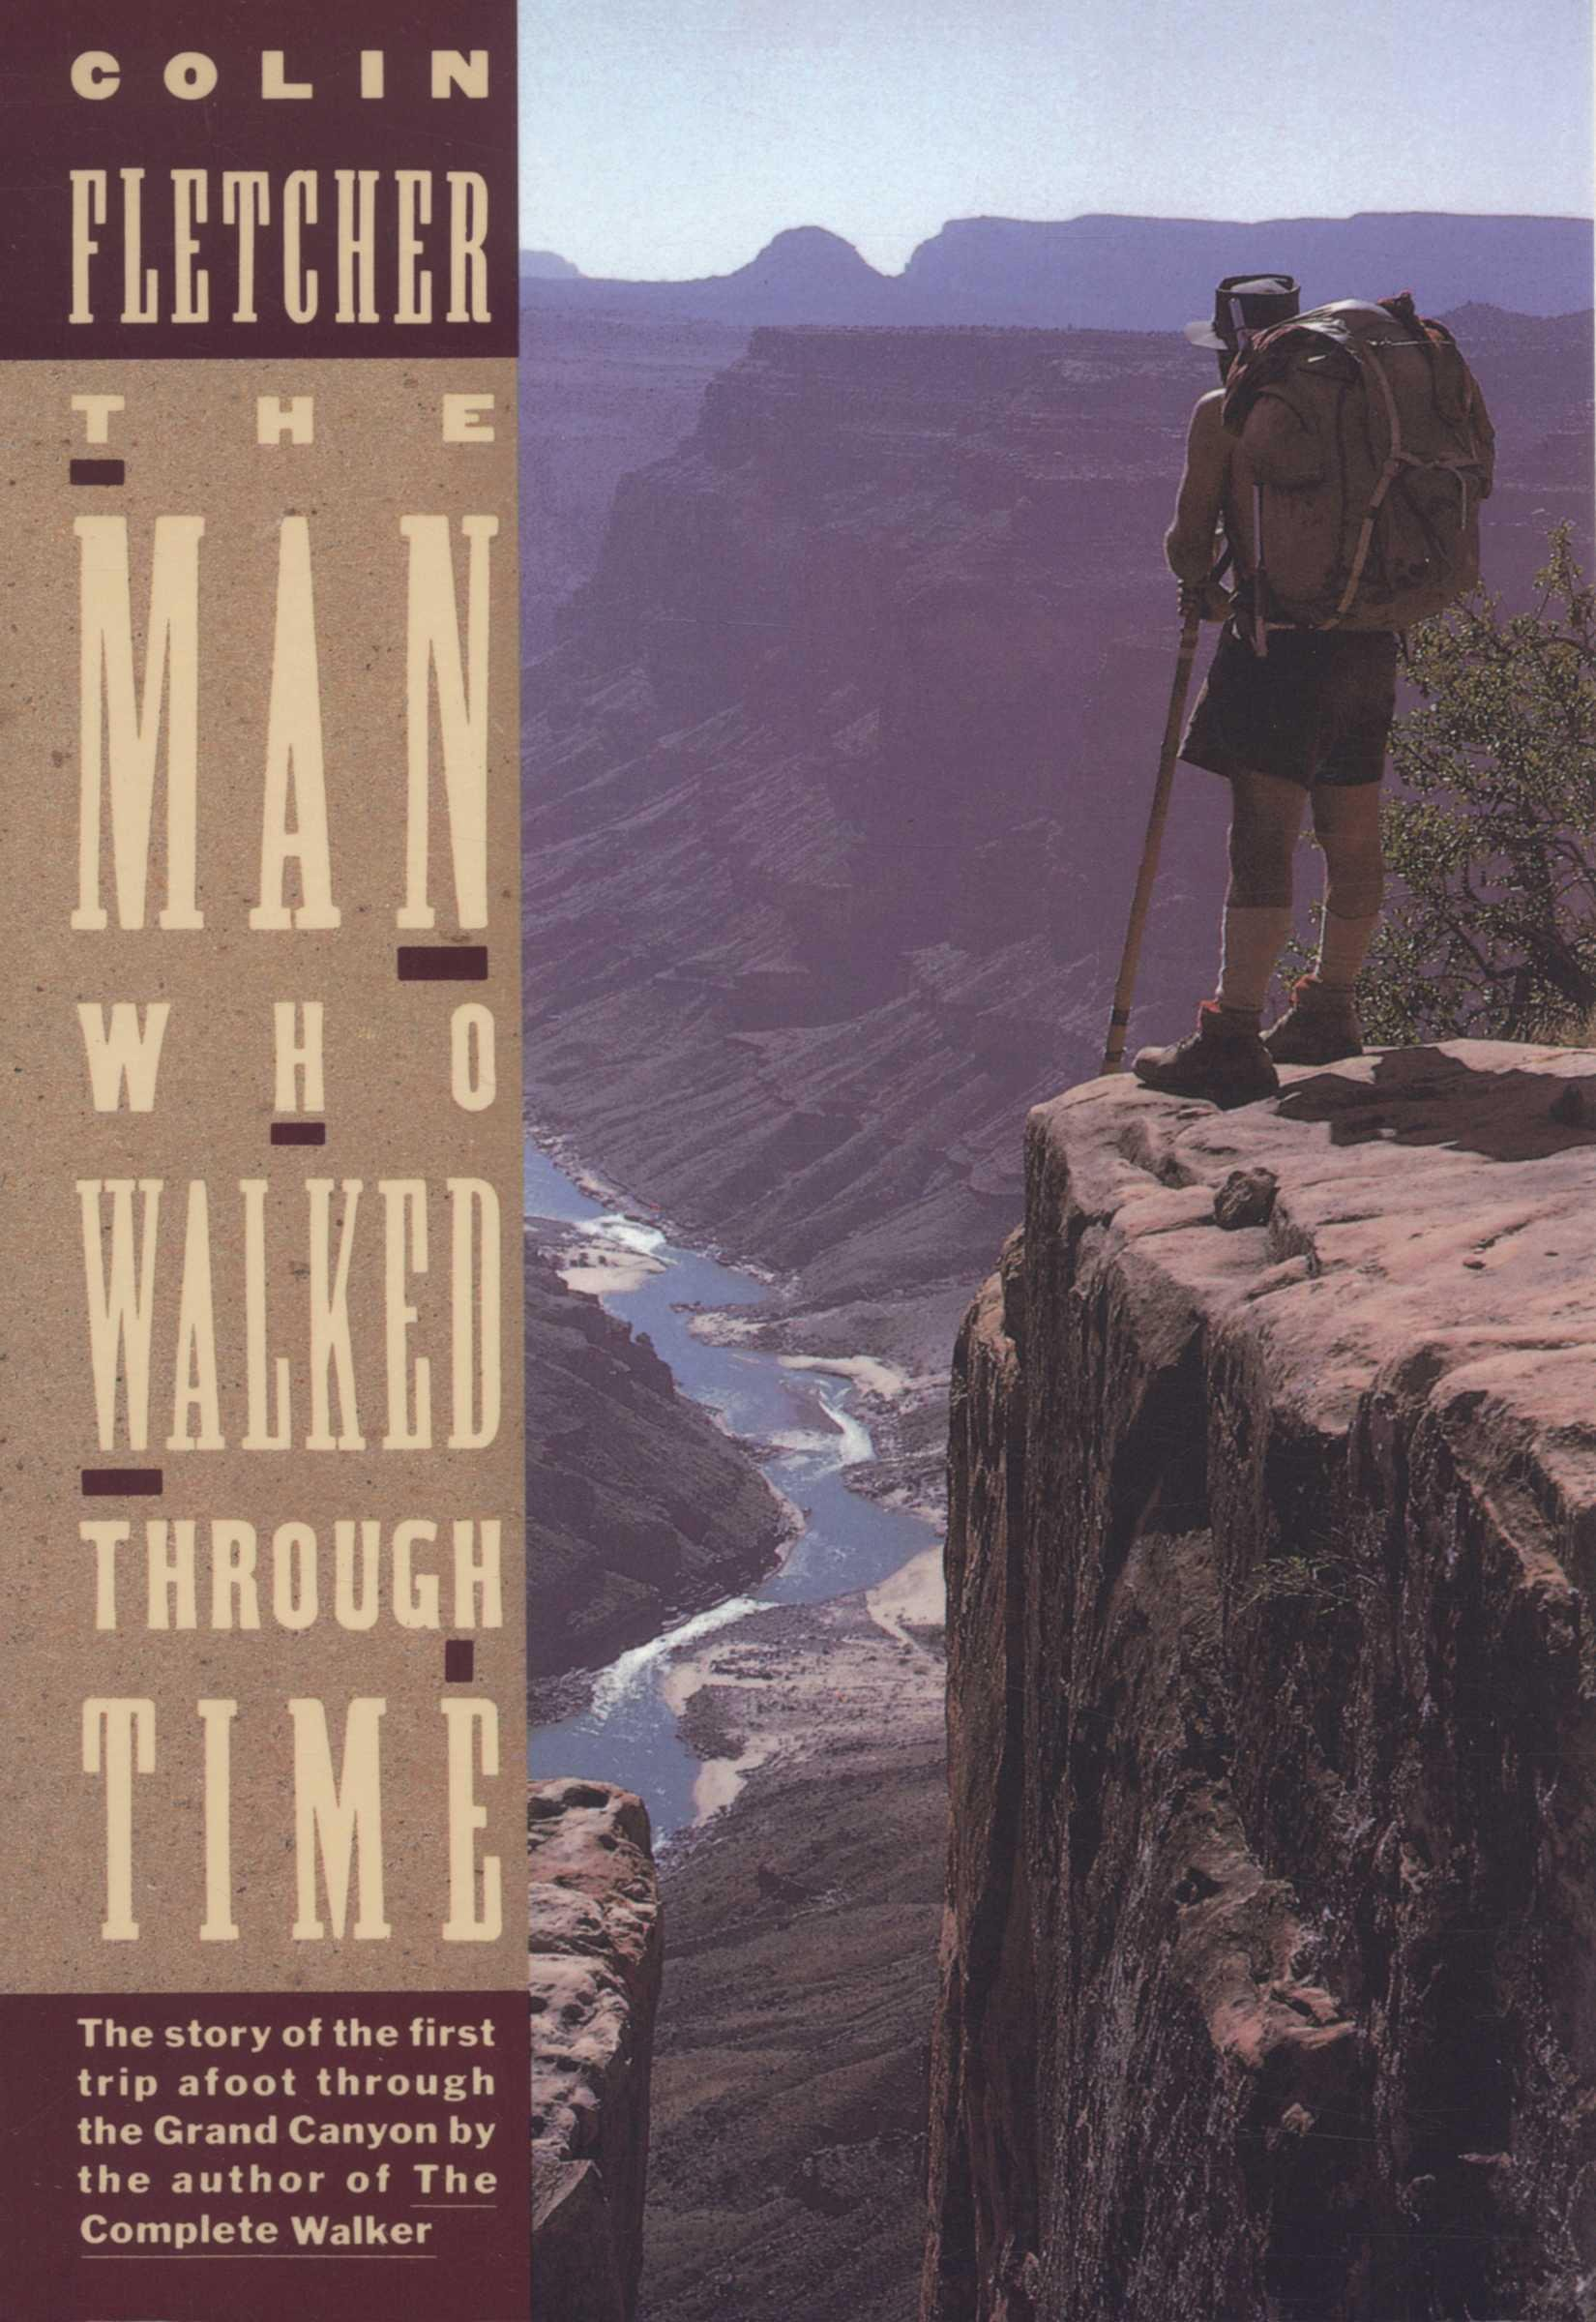 The Man Who Walked Through Time: The Story of the First Trip Afoot Through the Grand Canyon (Vintage Departures) (English Edition)